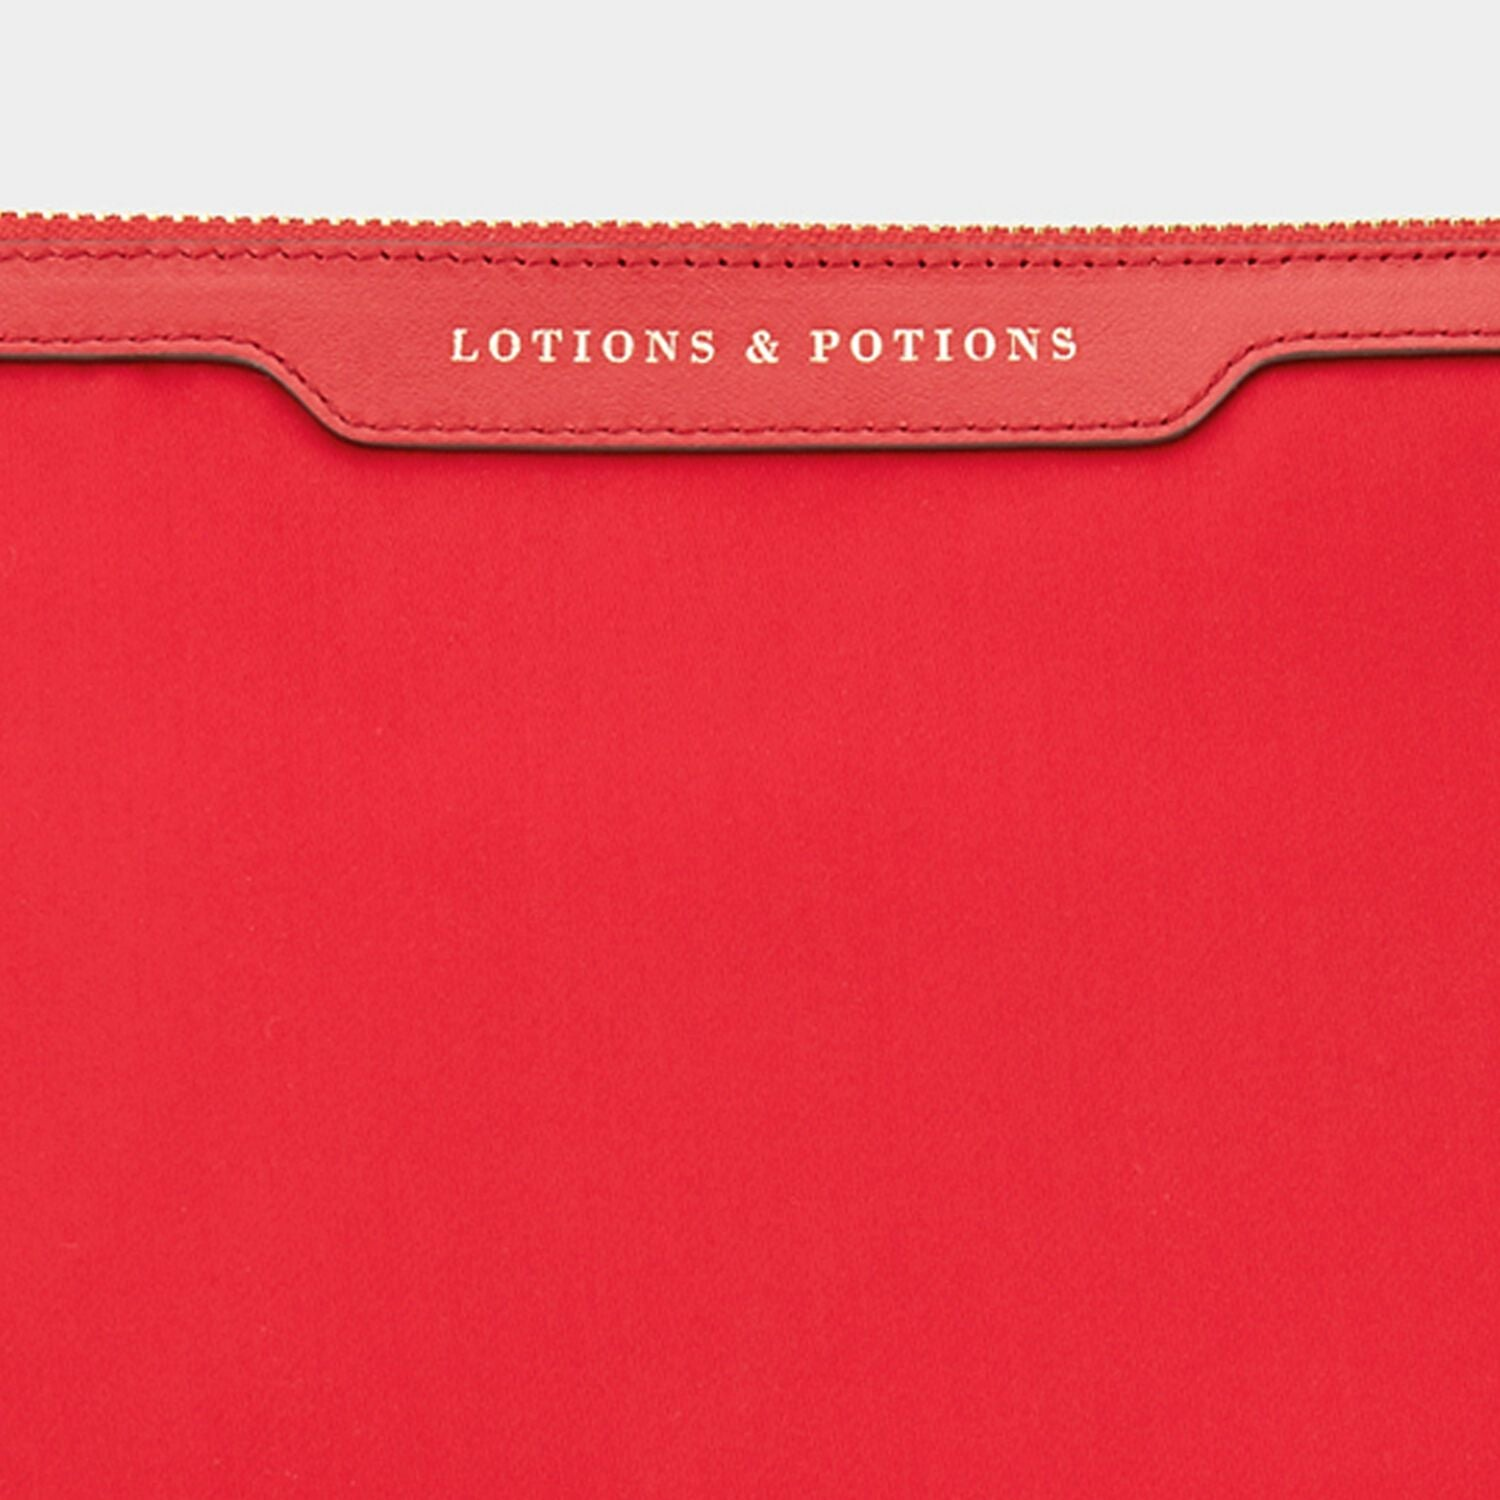 Lotions and Potions Pouch